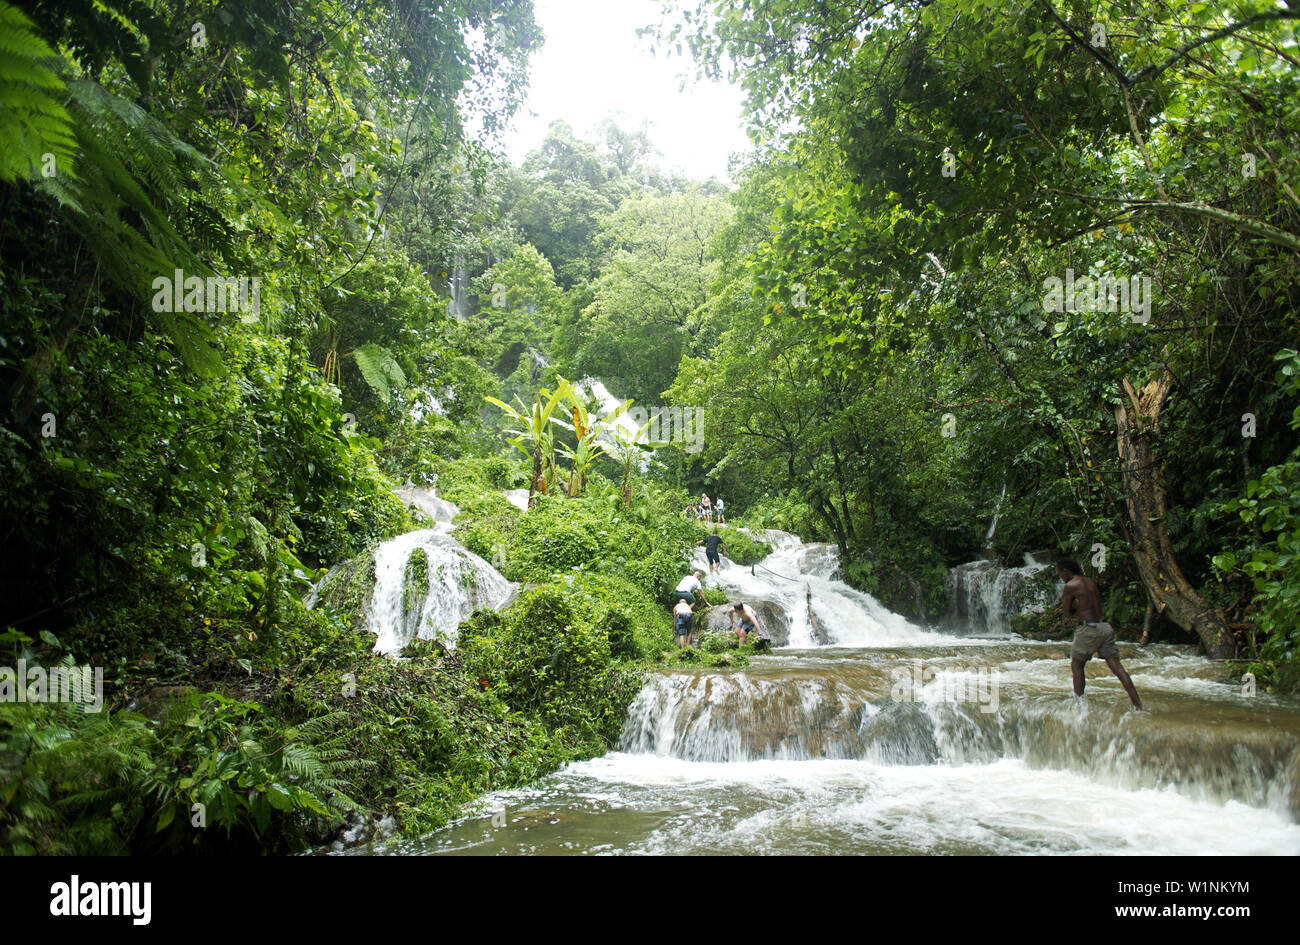 The tumbling waters of the Mele Cascades on the island of Efate - Stock Image